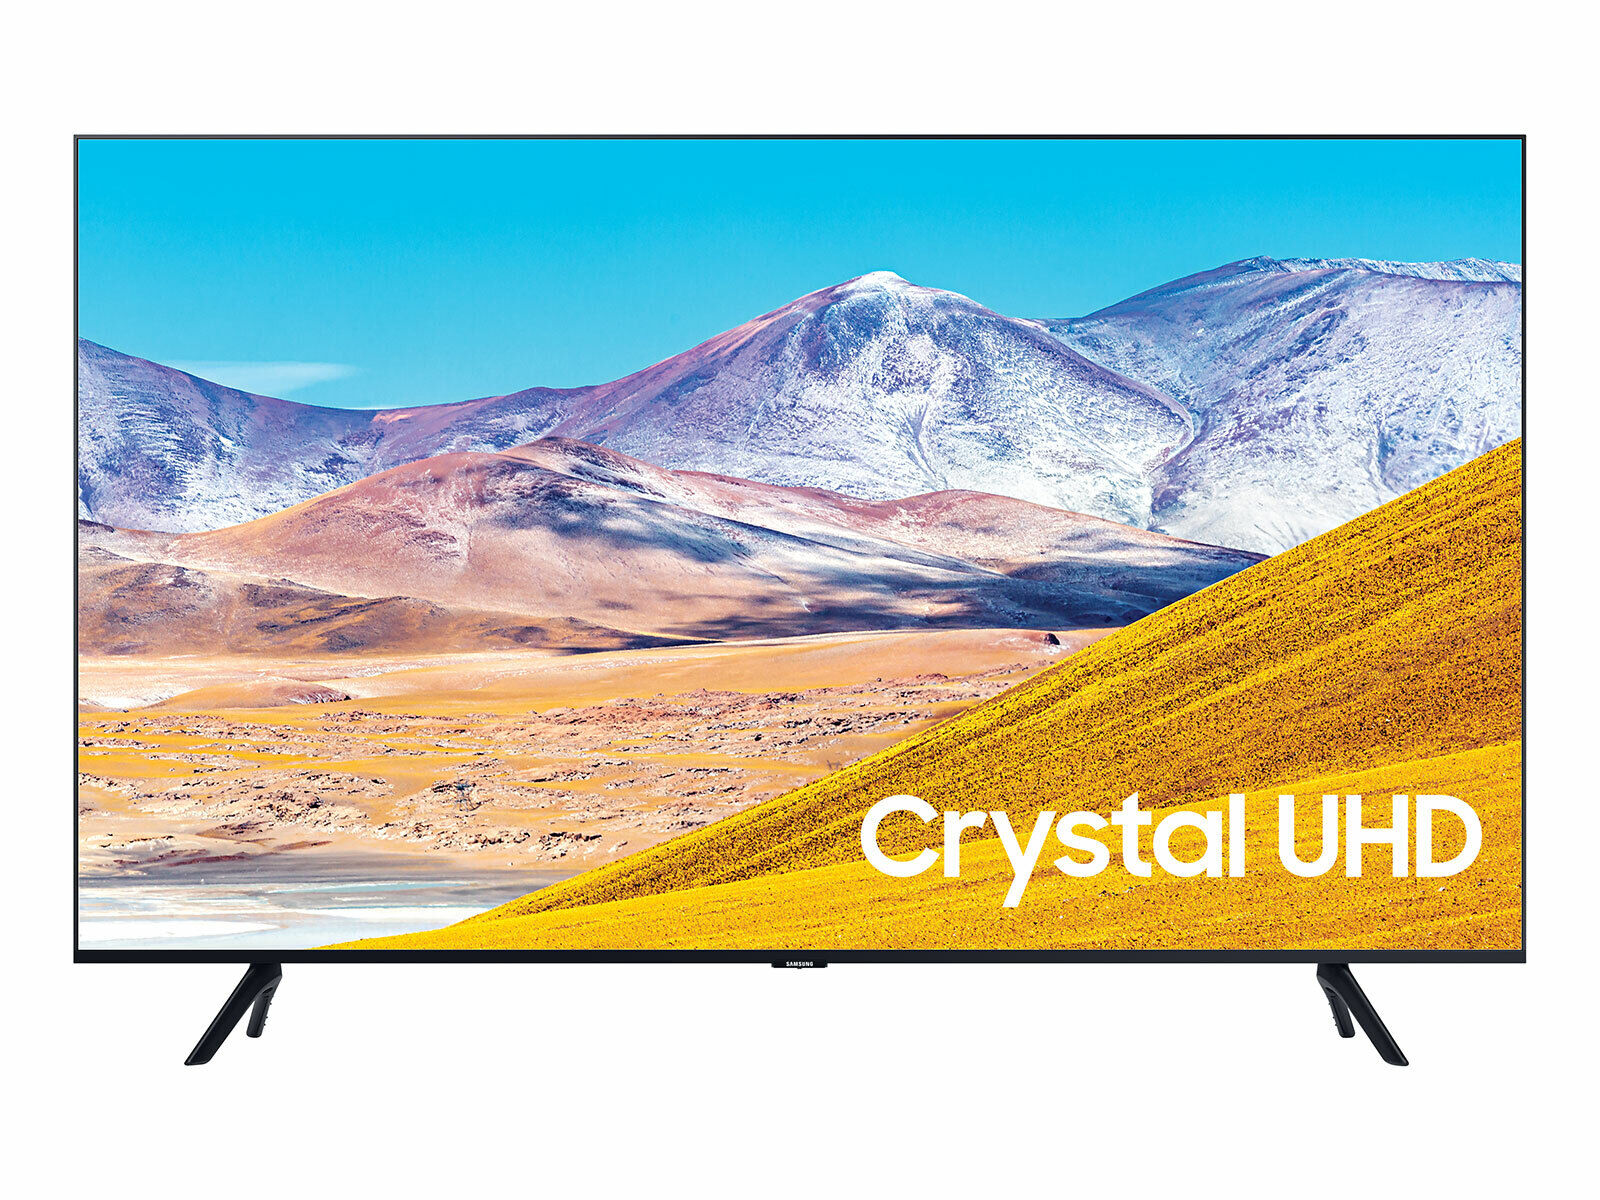 UN55TU8000FXZA electronic_express Samsung TU8000 55 4K Crystal Ultra HD HDR Smart TV - 2020 Model *UN55TU8000